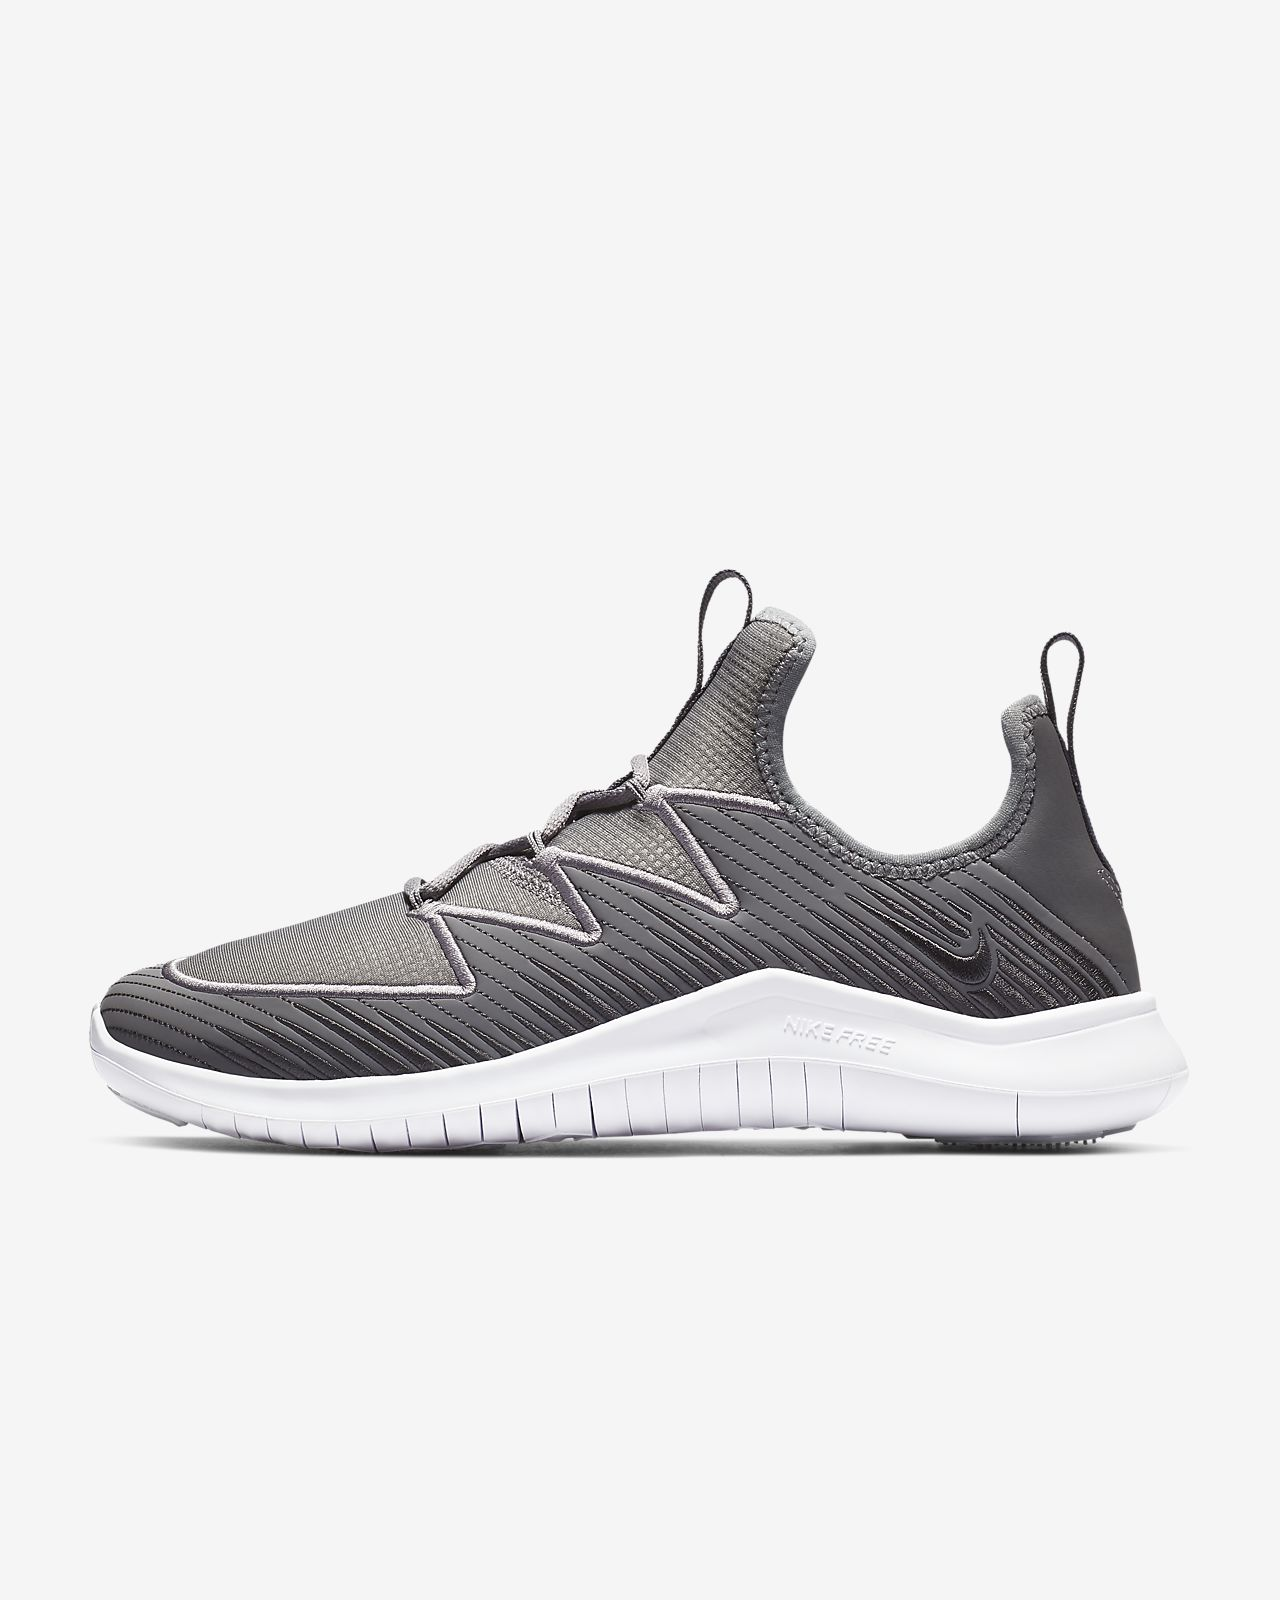 7e67a69bce3 Nike Free TR Ultra Women s Training Shoe. Nike.com IE